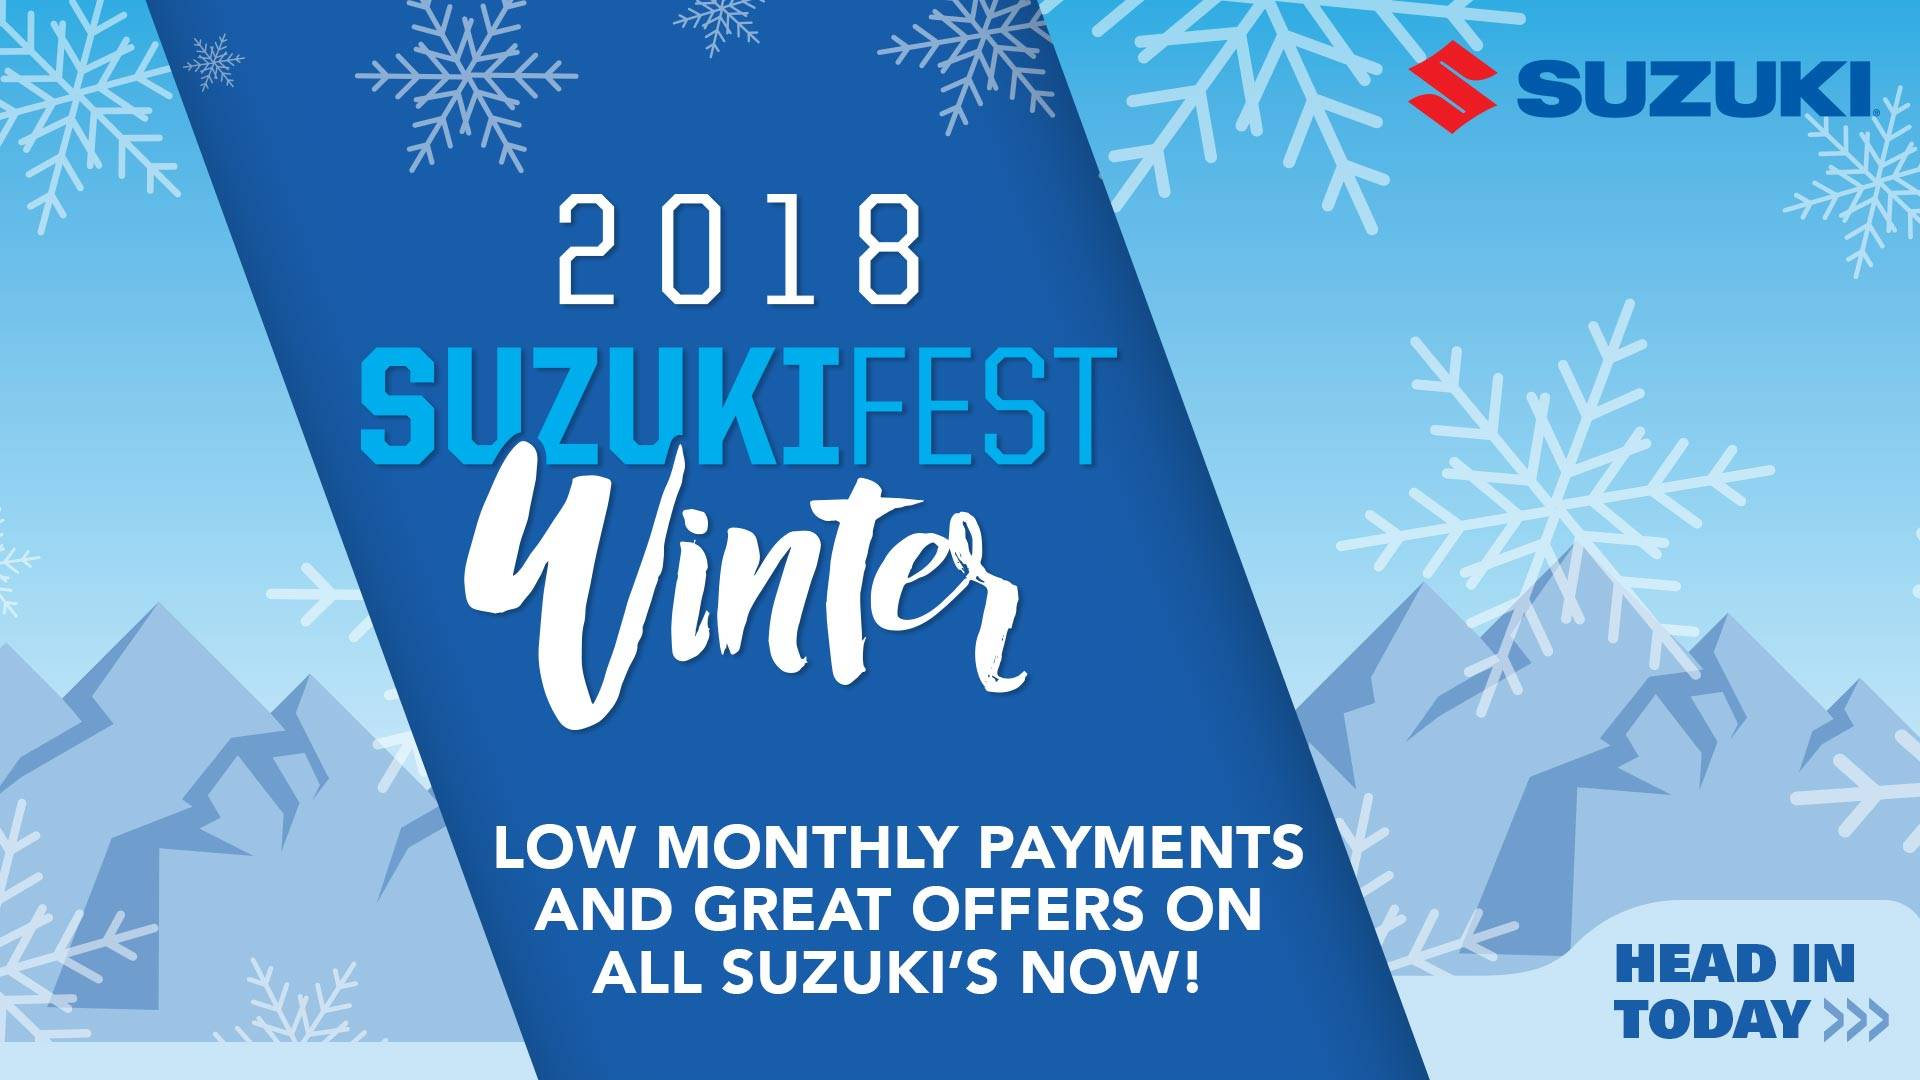 Suzuki Motor of America Inc. Suzuki - Suzukifest Winter - All ATVs